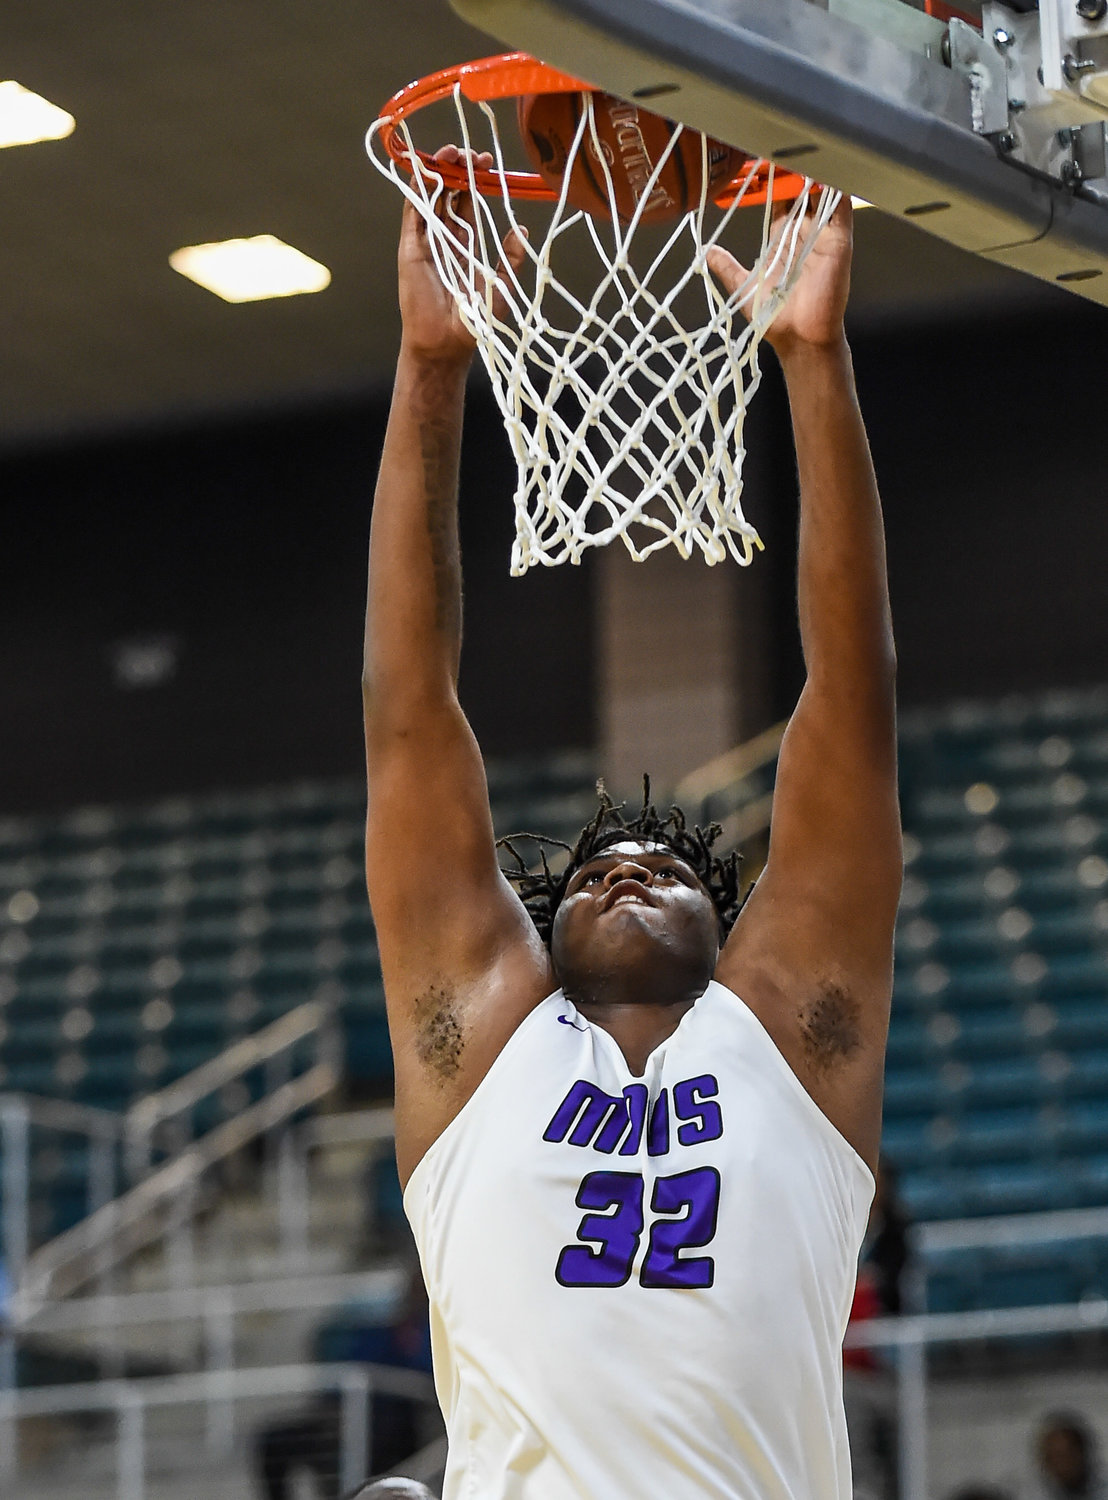 Katy Tx. Dec7, 2019: Morton Ranch's Eddie Lampkin (32) gets the slam dunk during the Katy Classic at the Merrell Center.  (Photo by Mark Goodman / Katy Times)